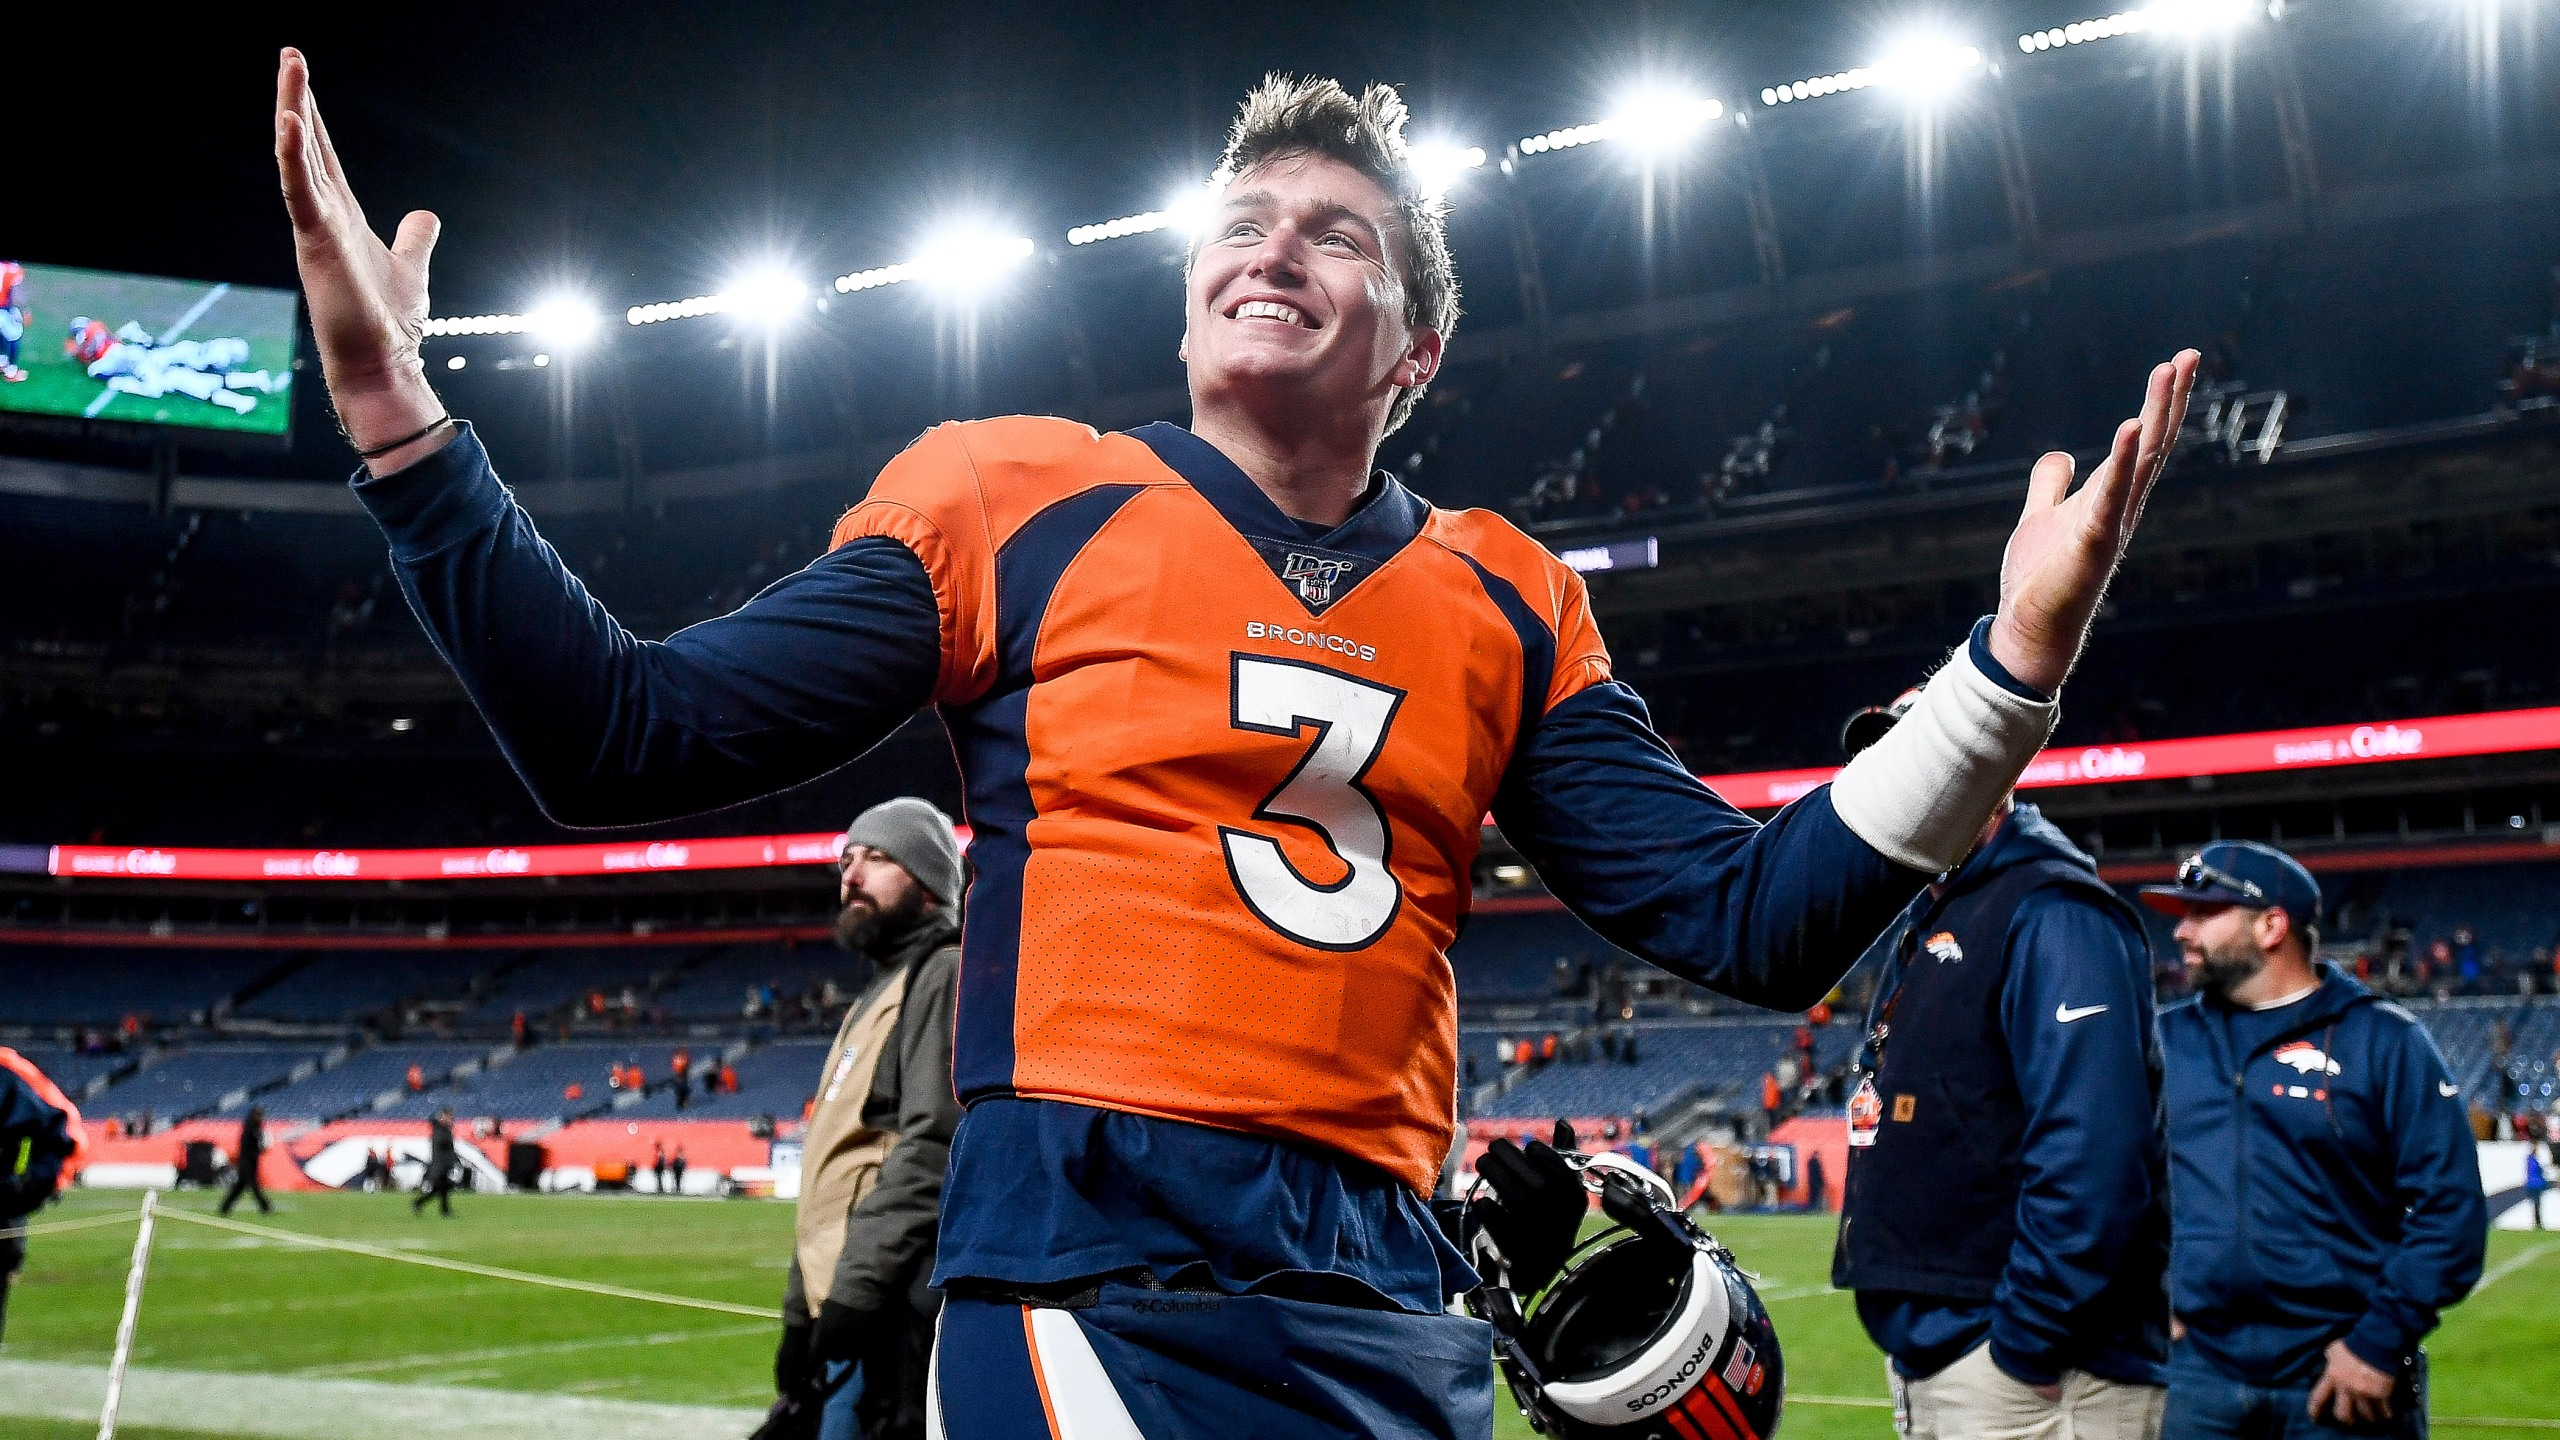 Drew Lock walks off the field after a 16-15 win over the Oakland Raiders at Empower Field at Mile High on Dec. 29, 2019.